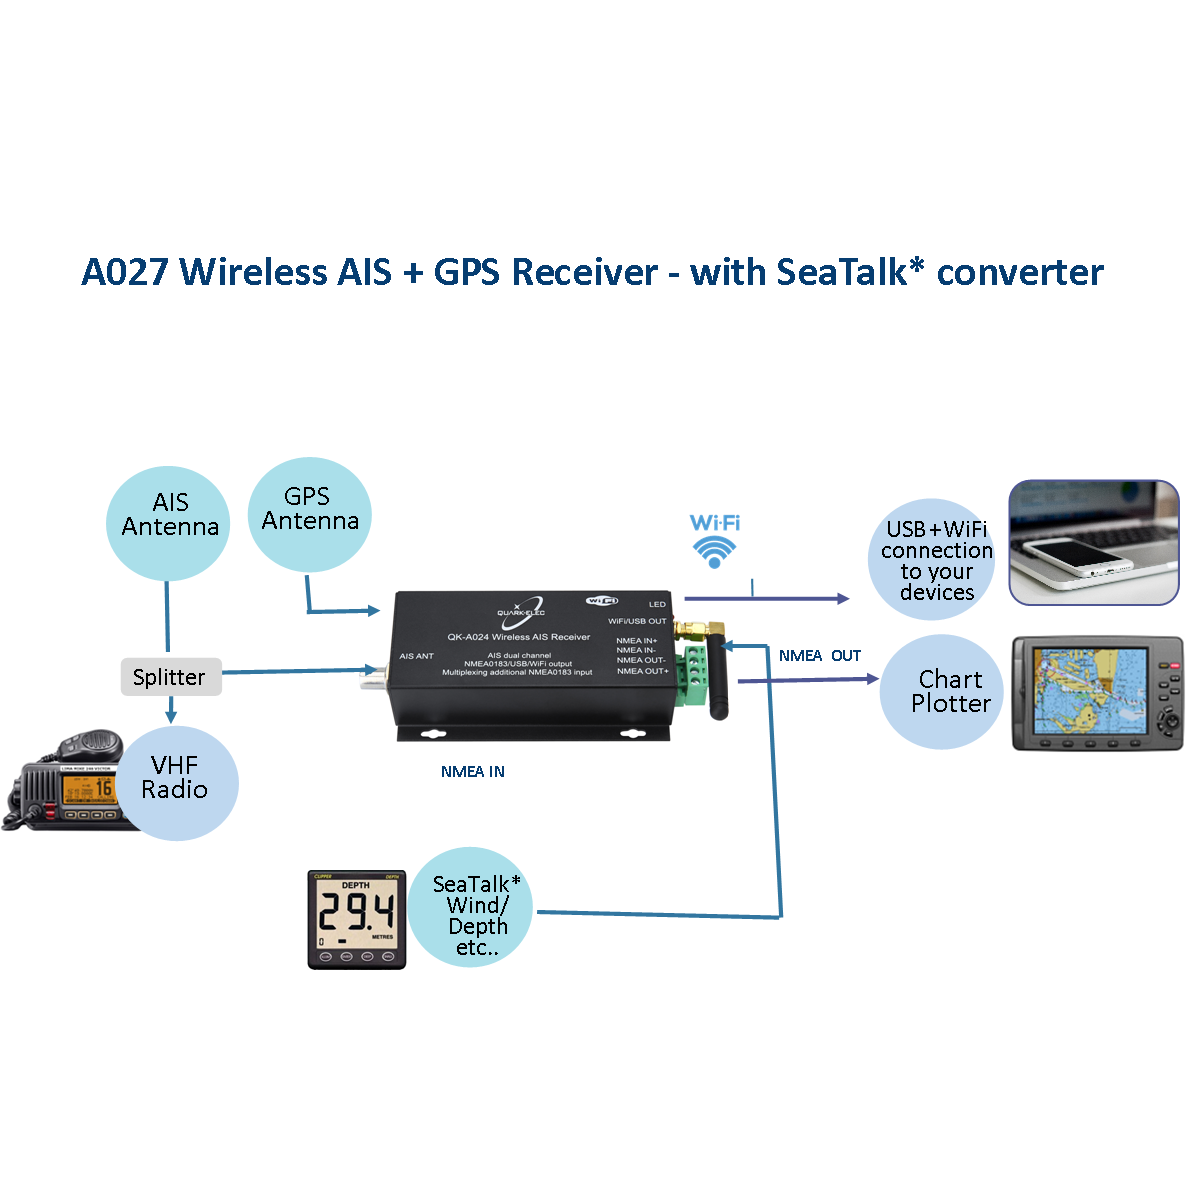 it can receive information from both ais frequencies simultaneously it includes an integrated gps module that can track up to 22 satellites  [ 1187 x 1181 Pixel ]